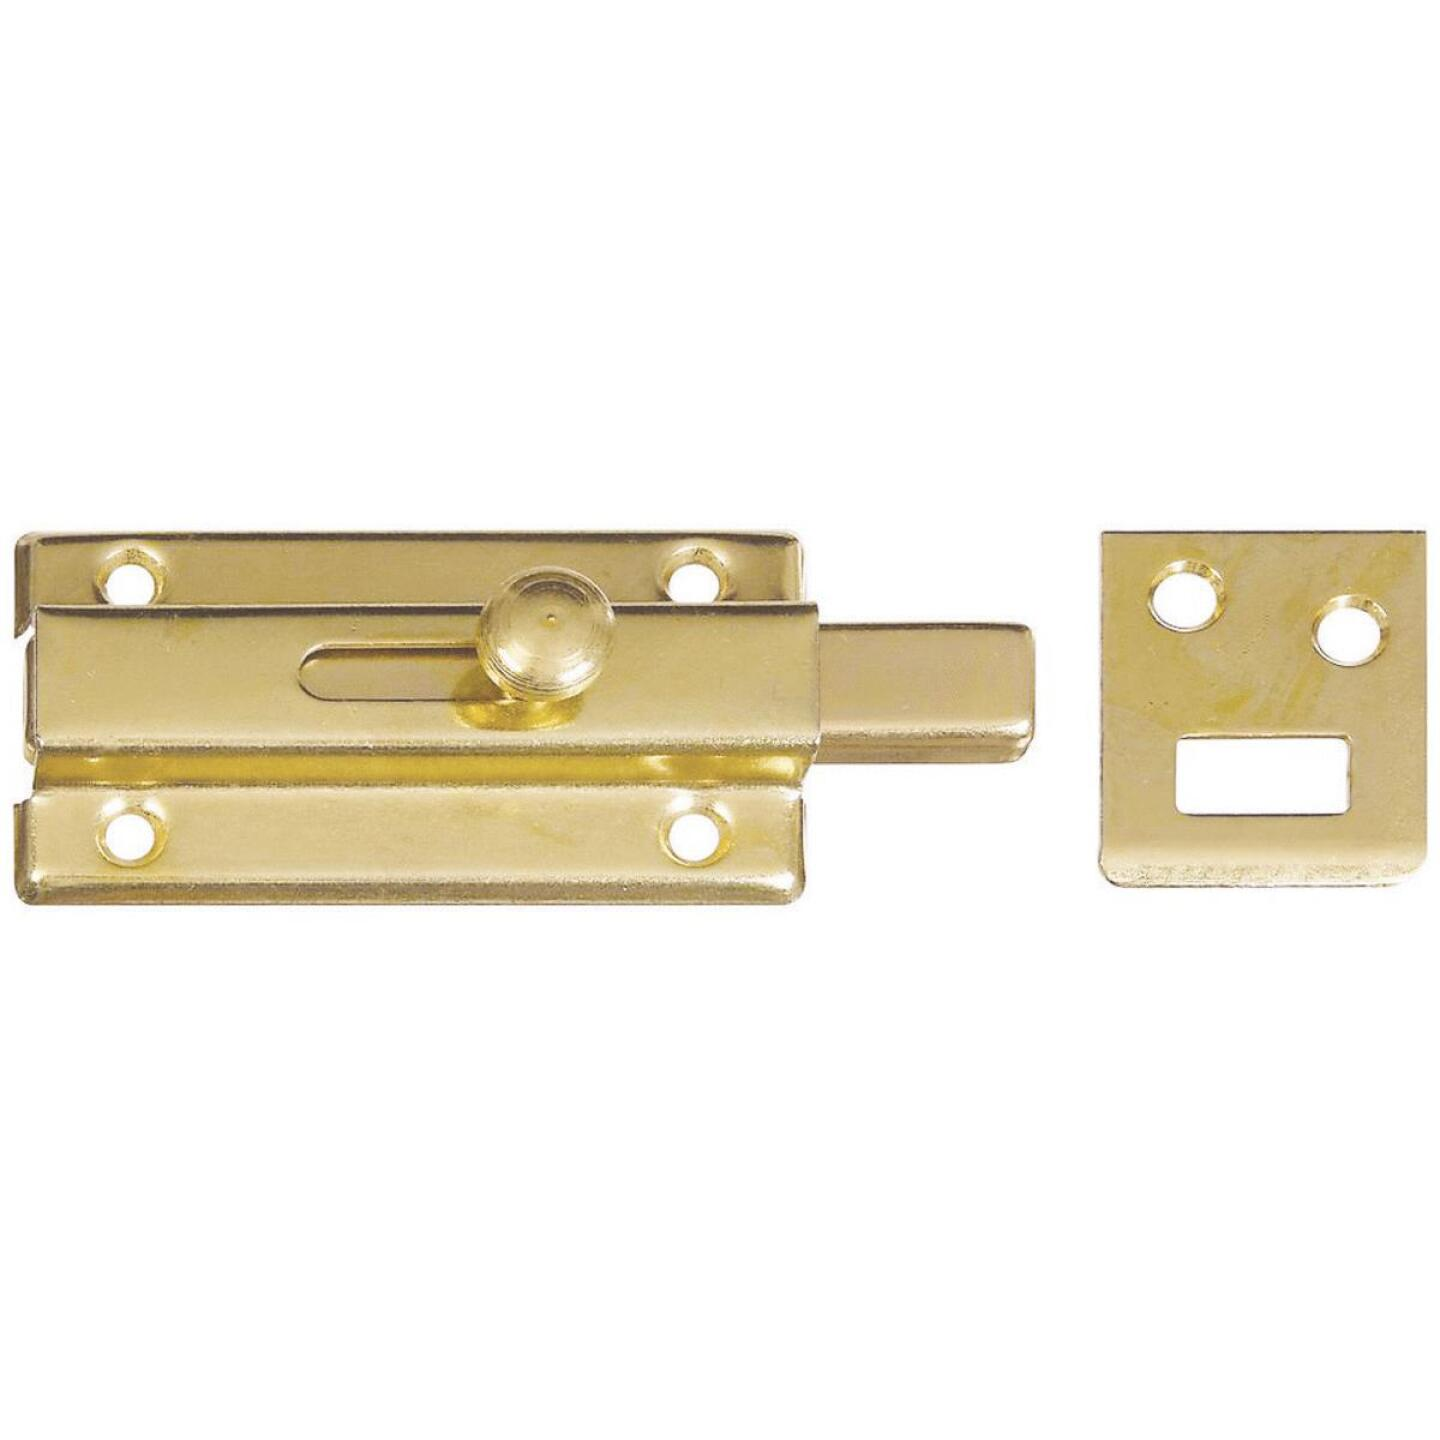 National 3 In. Brass Door Slide Bolt Image 1